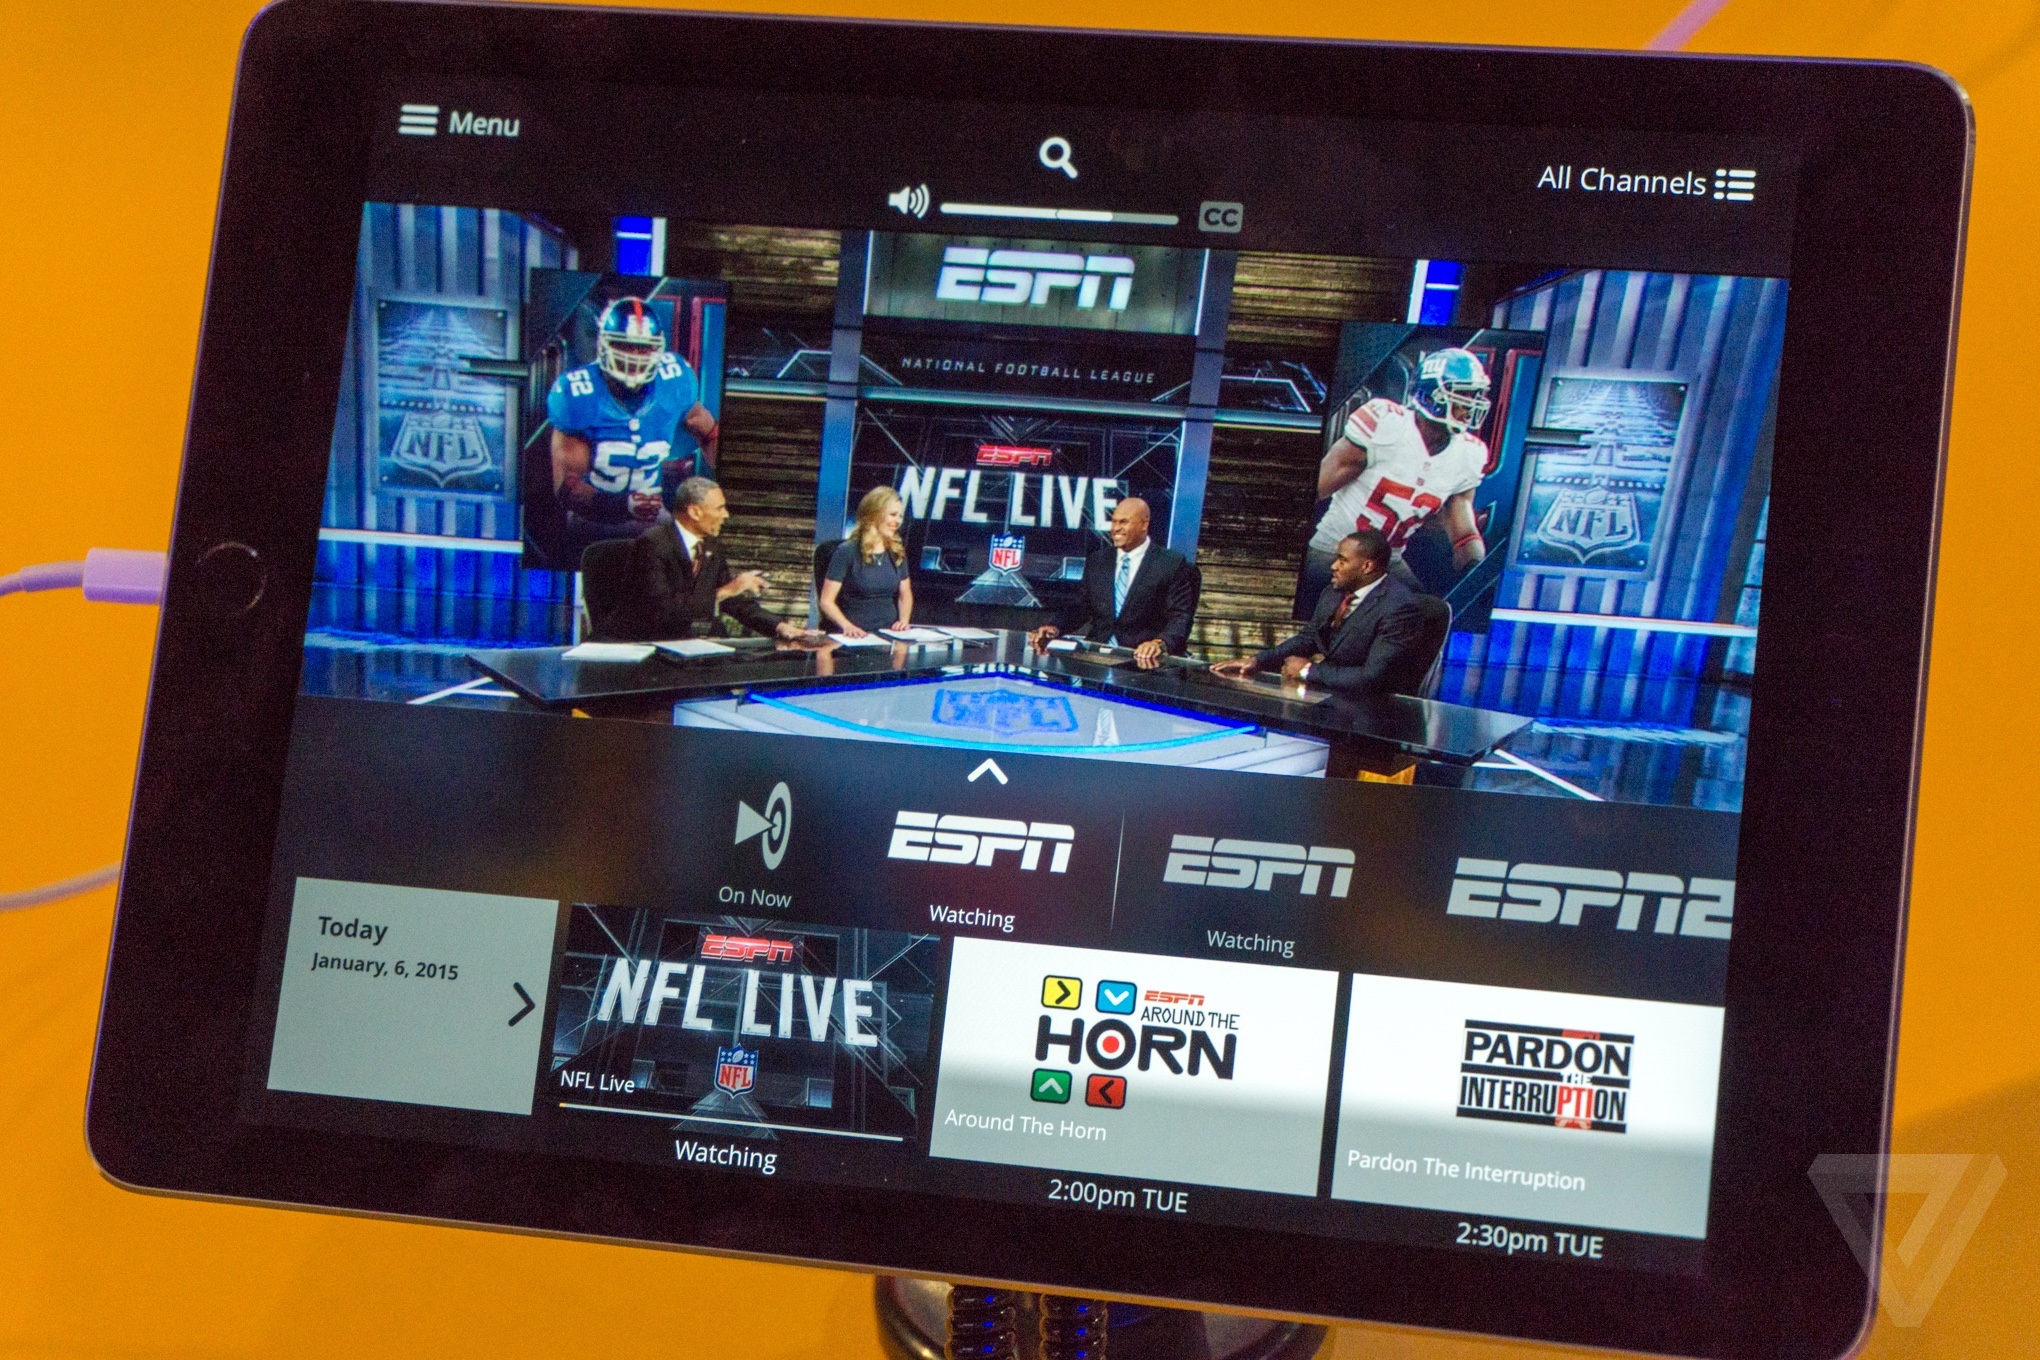 Sling TV tablet interface